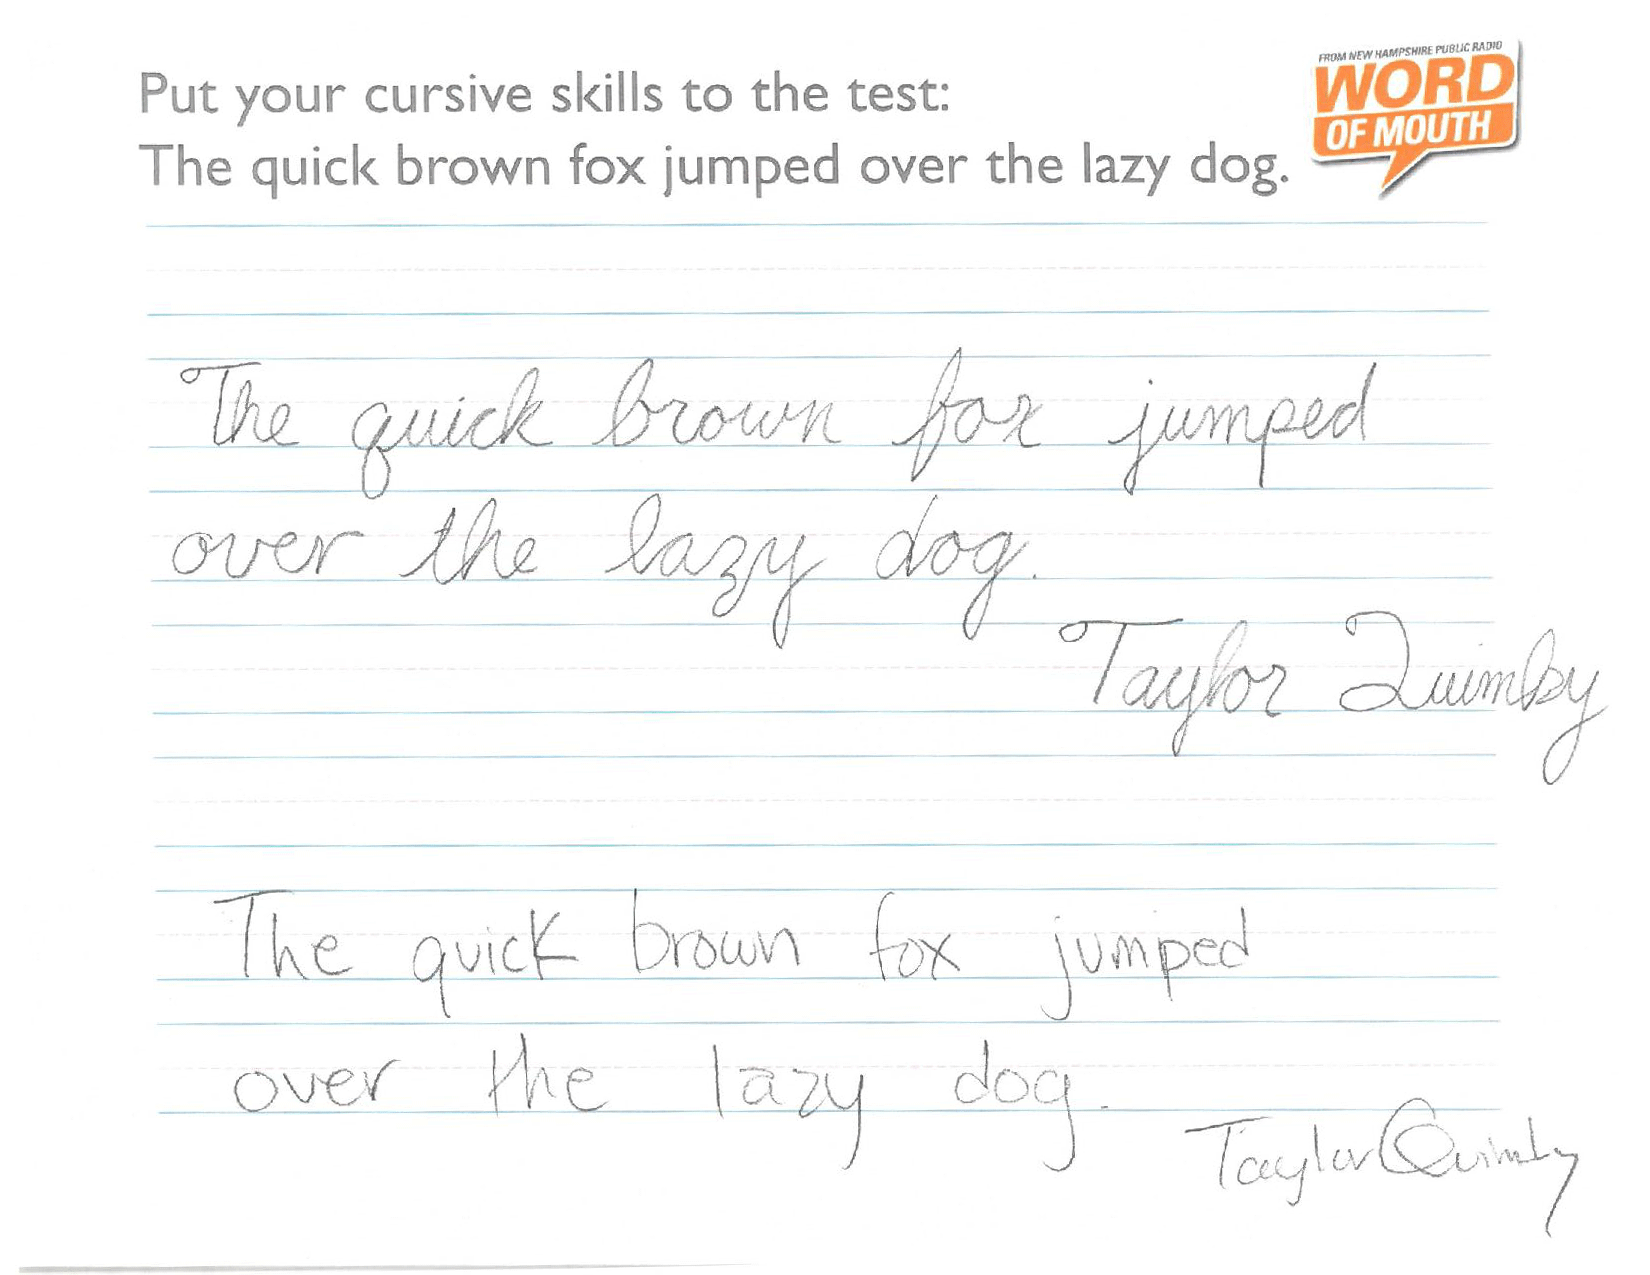 Putting Our Cursive Skills To The Test